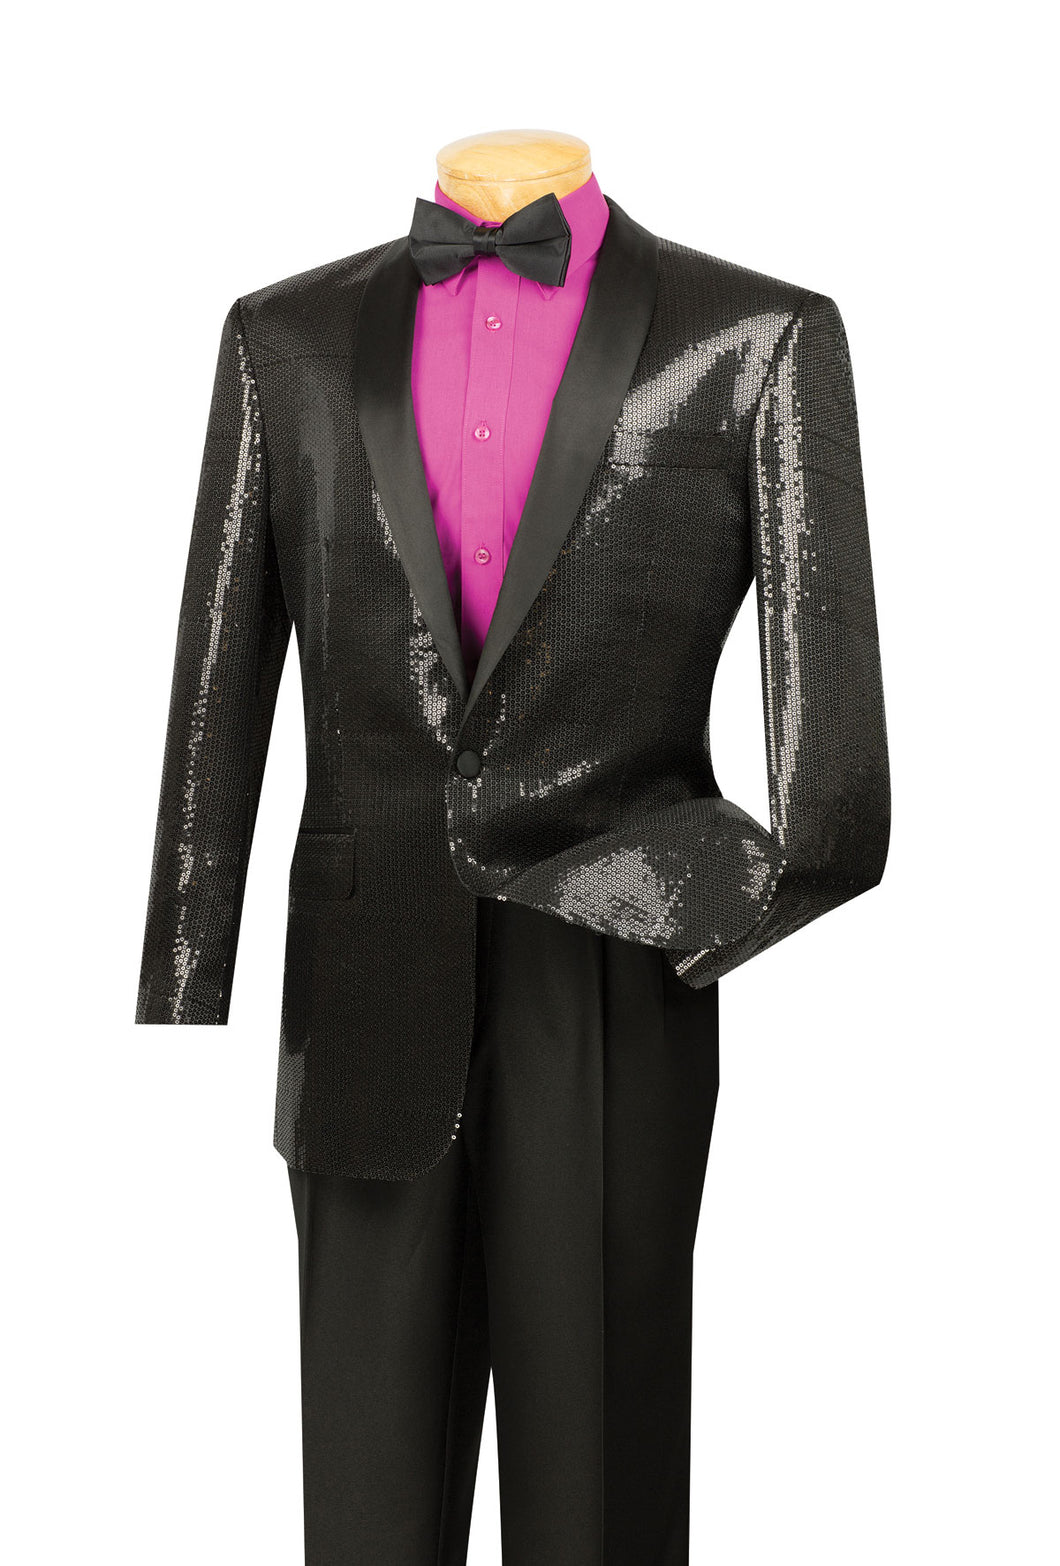 Men's Black Sequin Tuxedo Jacket Blazer BSQ-1